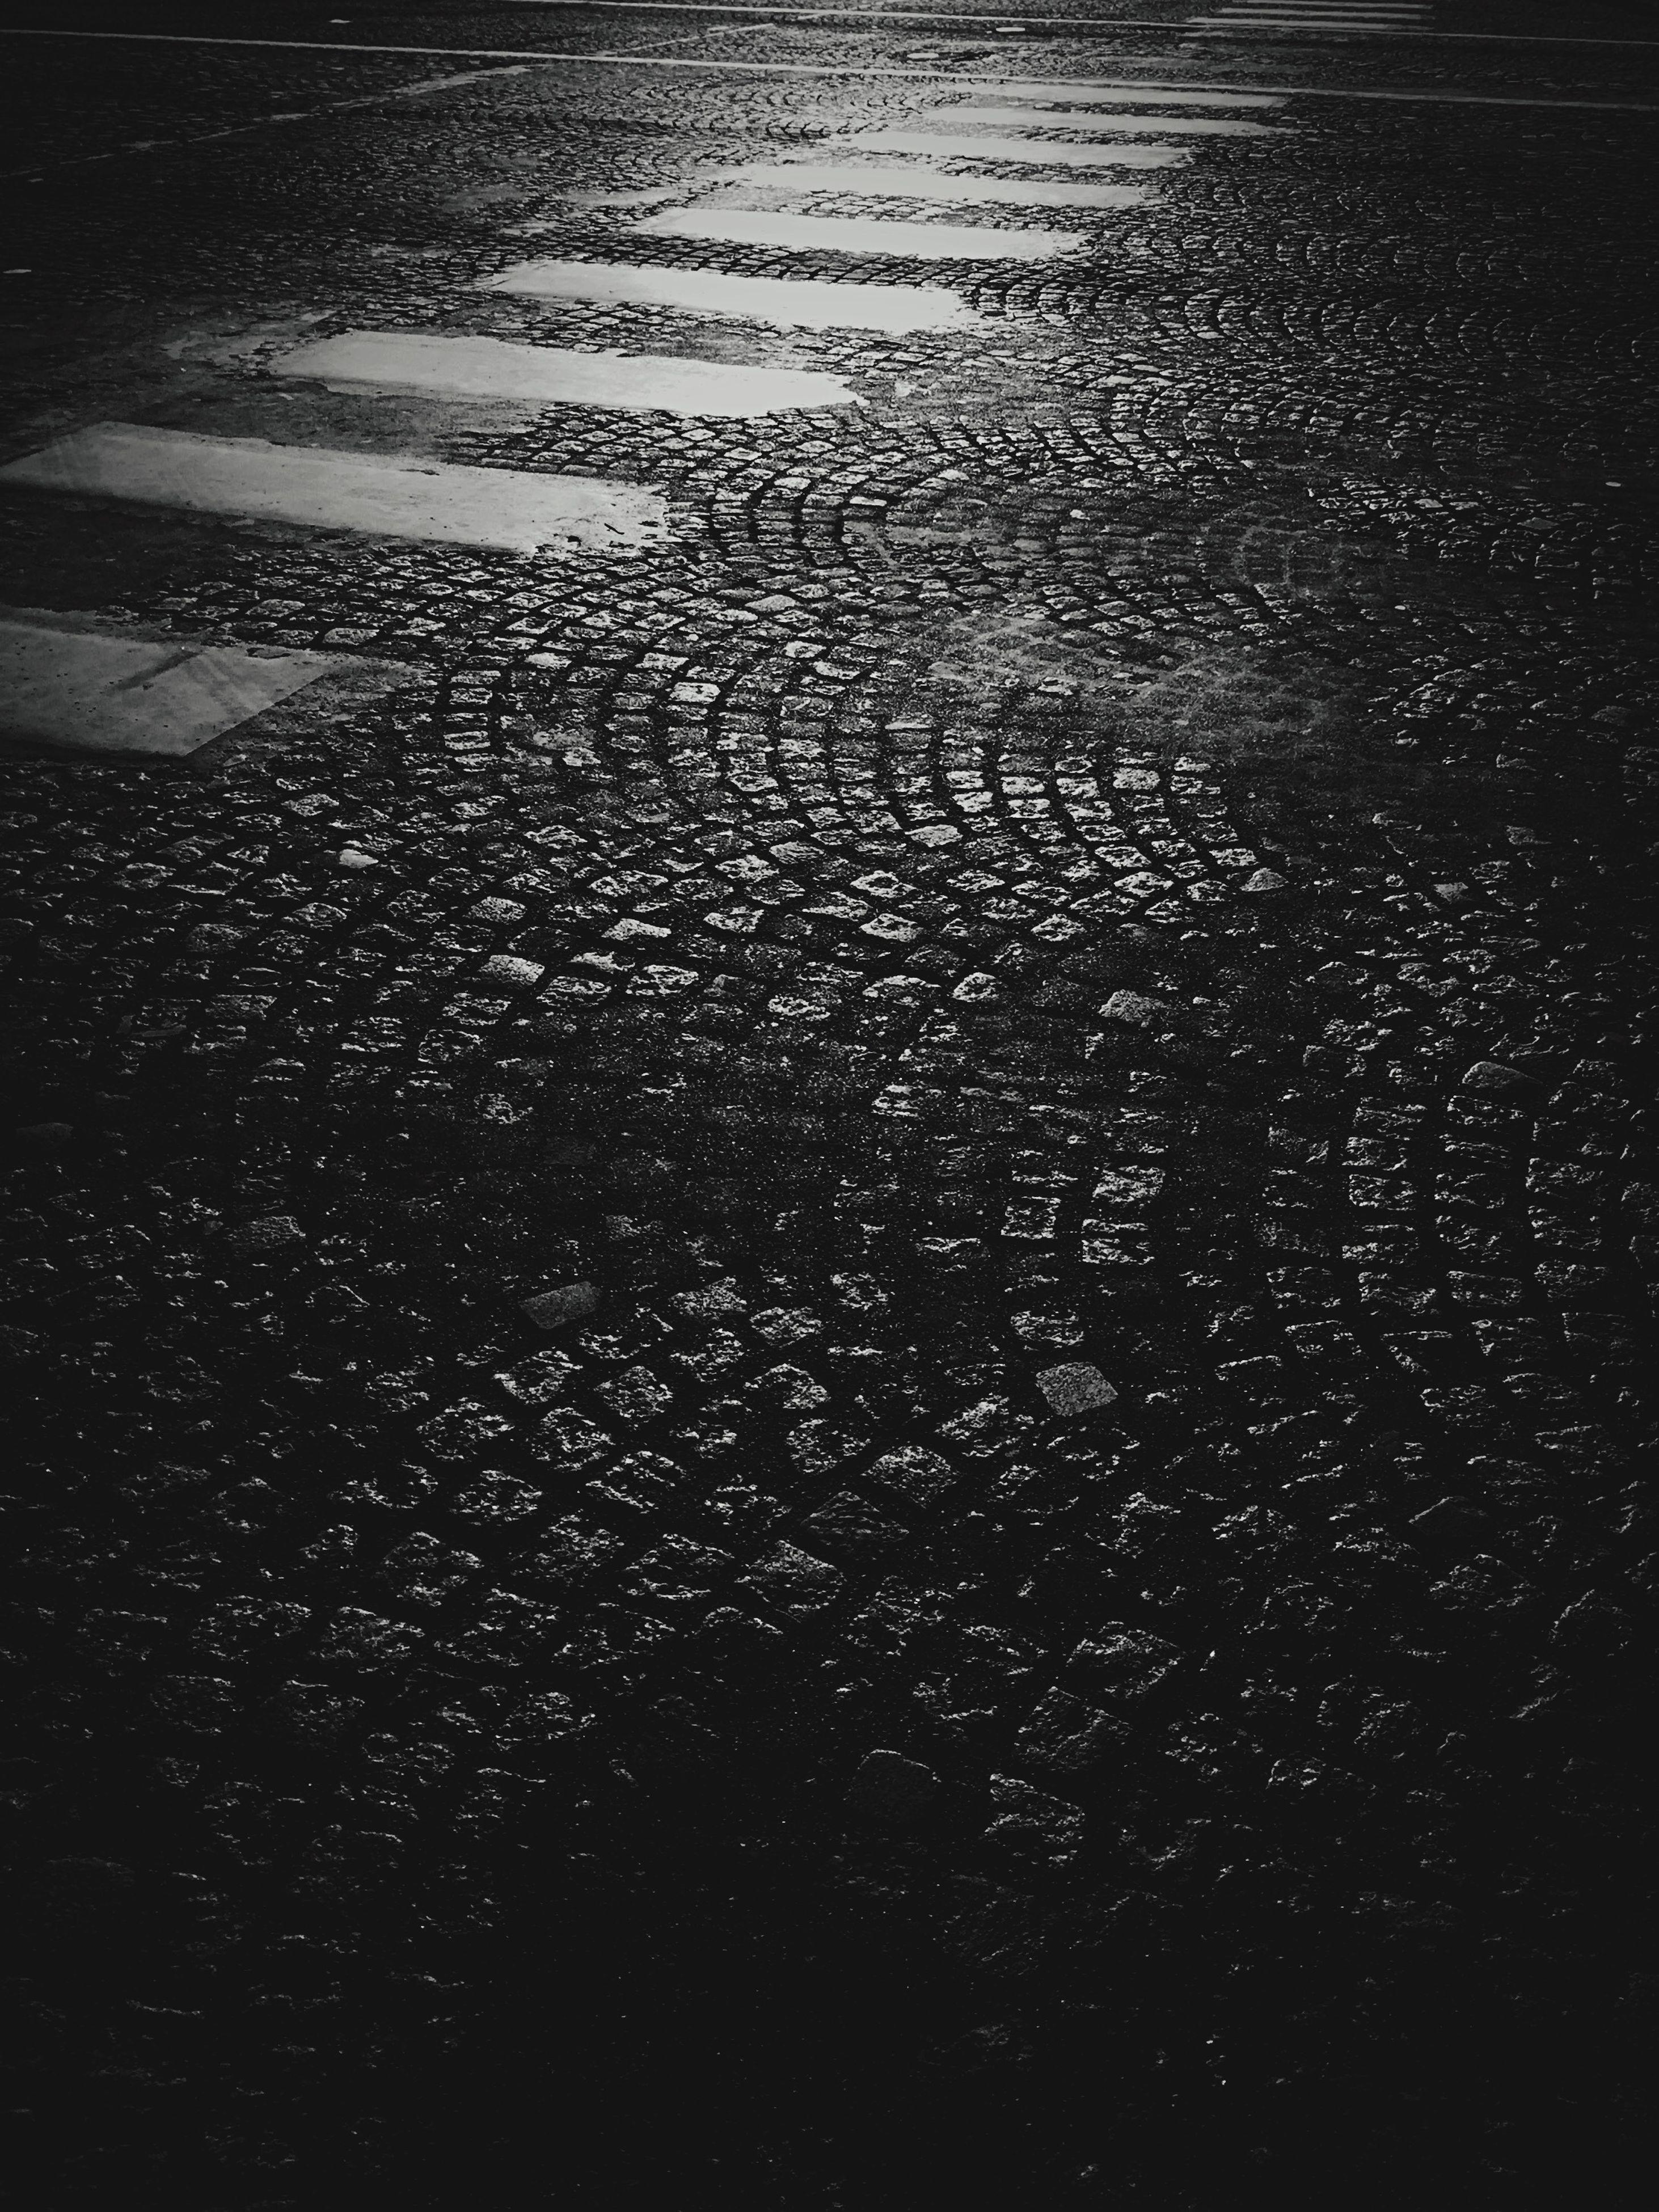 night, water, wet, high angle view, full frame, backgrounds, street, rain, dark, no people, road, nature, outdoors, tranquility, weather, asphalt, season, pattern, reflection, transportation